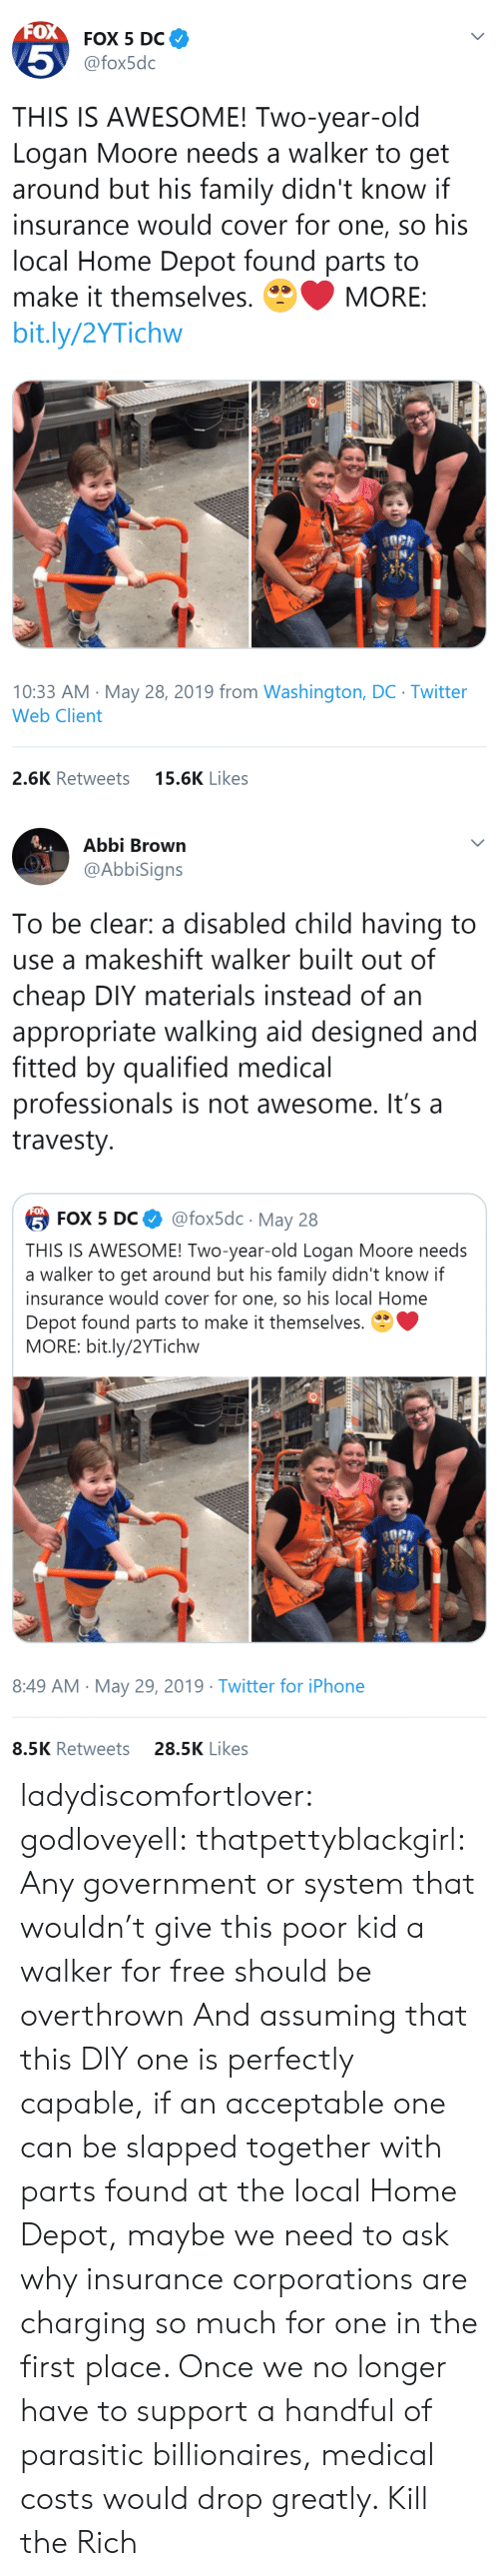 Fitted: FOX  FOX 5 DC  5  @fox5dc  THIS IS AWESOME! Two-year-old  Logan Moore needs a walker to get  around but his family didn't know if  insurance would cover for one, so his  local Home Depot found parts to  make it themselves.  MORE:  bit.ly/2YTichw  10:33 AM May 28, 2019 from Washington, DC Twitter  Web Client  15.6K Likes  2.6K Retweets   Abbi Brown  @AbbiSigns  To be clear: a disabled child having to  use a makeshift walker built out of  cheap DIY materials instead of an  appropriate walking aid designed and  fitted by qualified medical  professionals is not awesome. It's a  travesty  FOX  @fox5dc May 28  5 FOX 5 DС  THIS IS AWESOME! Two-year-old Logan Moore needs  a walker to get around but his family didn't know if  insurance would cover for one, so his local Home  Depot found parts to make it themselves.  MORE: bit.ly/2YTichw  8:49 AM May 29, 2019 Twitter for iPhone  28.5K Likes  8.5K Retweets ladydiscomfortlover: godloveyell:  thatpettyblackgirl:  Any government or system that wouldn't give this poor kid a walker for free should be overthrown   And assuming that this DIY one is perfectly capable, if an acceptable one can be slapped together with parts found at the local Home Depot, maybe we need to ask why insurance corporations are charging so much for one in the first place.  Once we no longer have to support a handful of parasitic billionaires, medical costs would drop greatly.    Kill the Rich